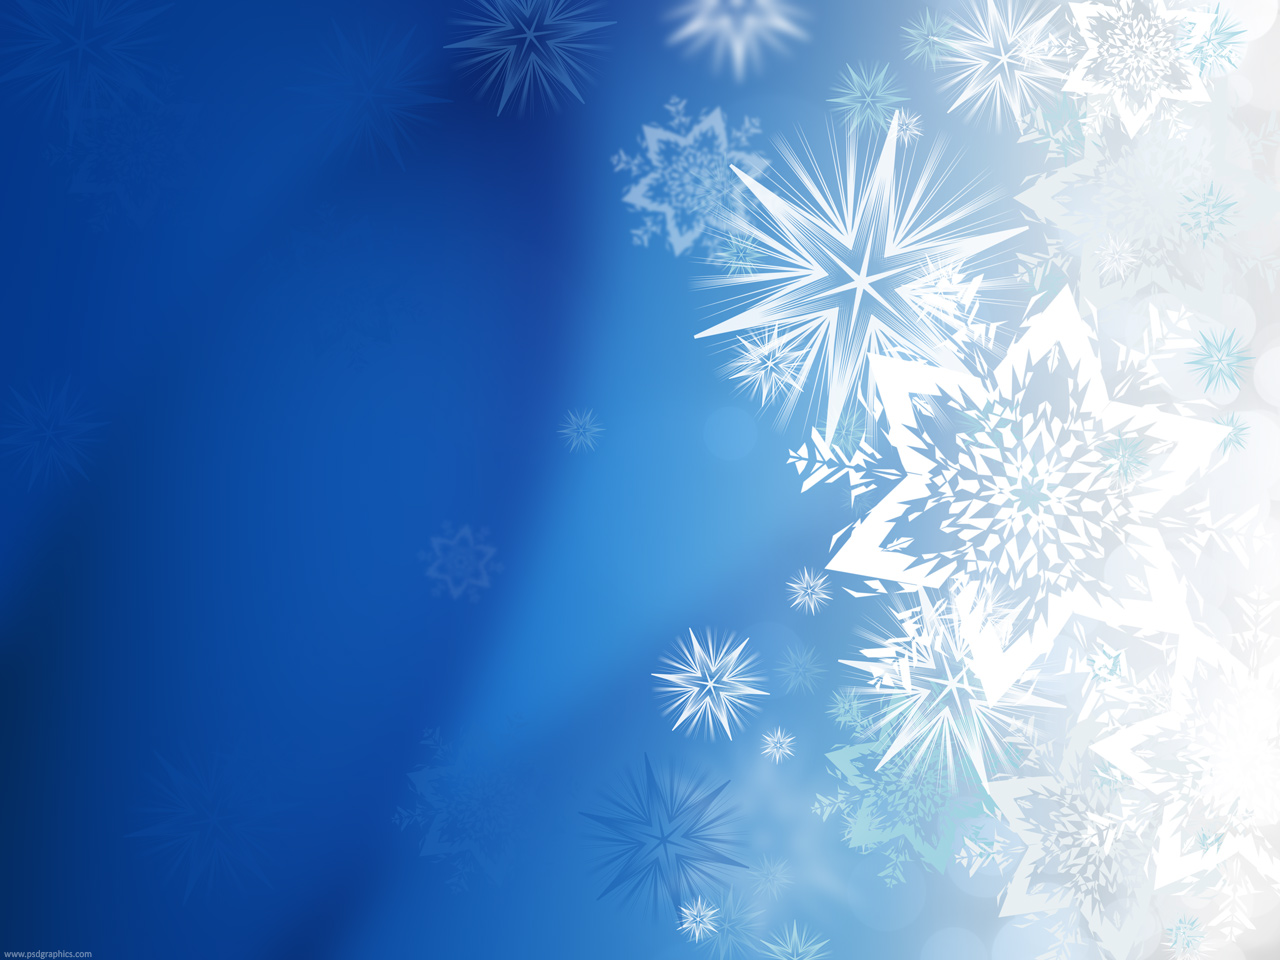 Medium size preview (1280x960px): Winter snowflakes background